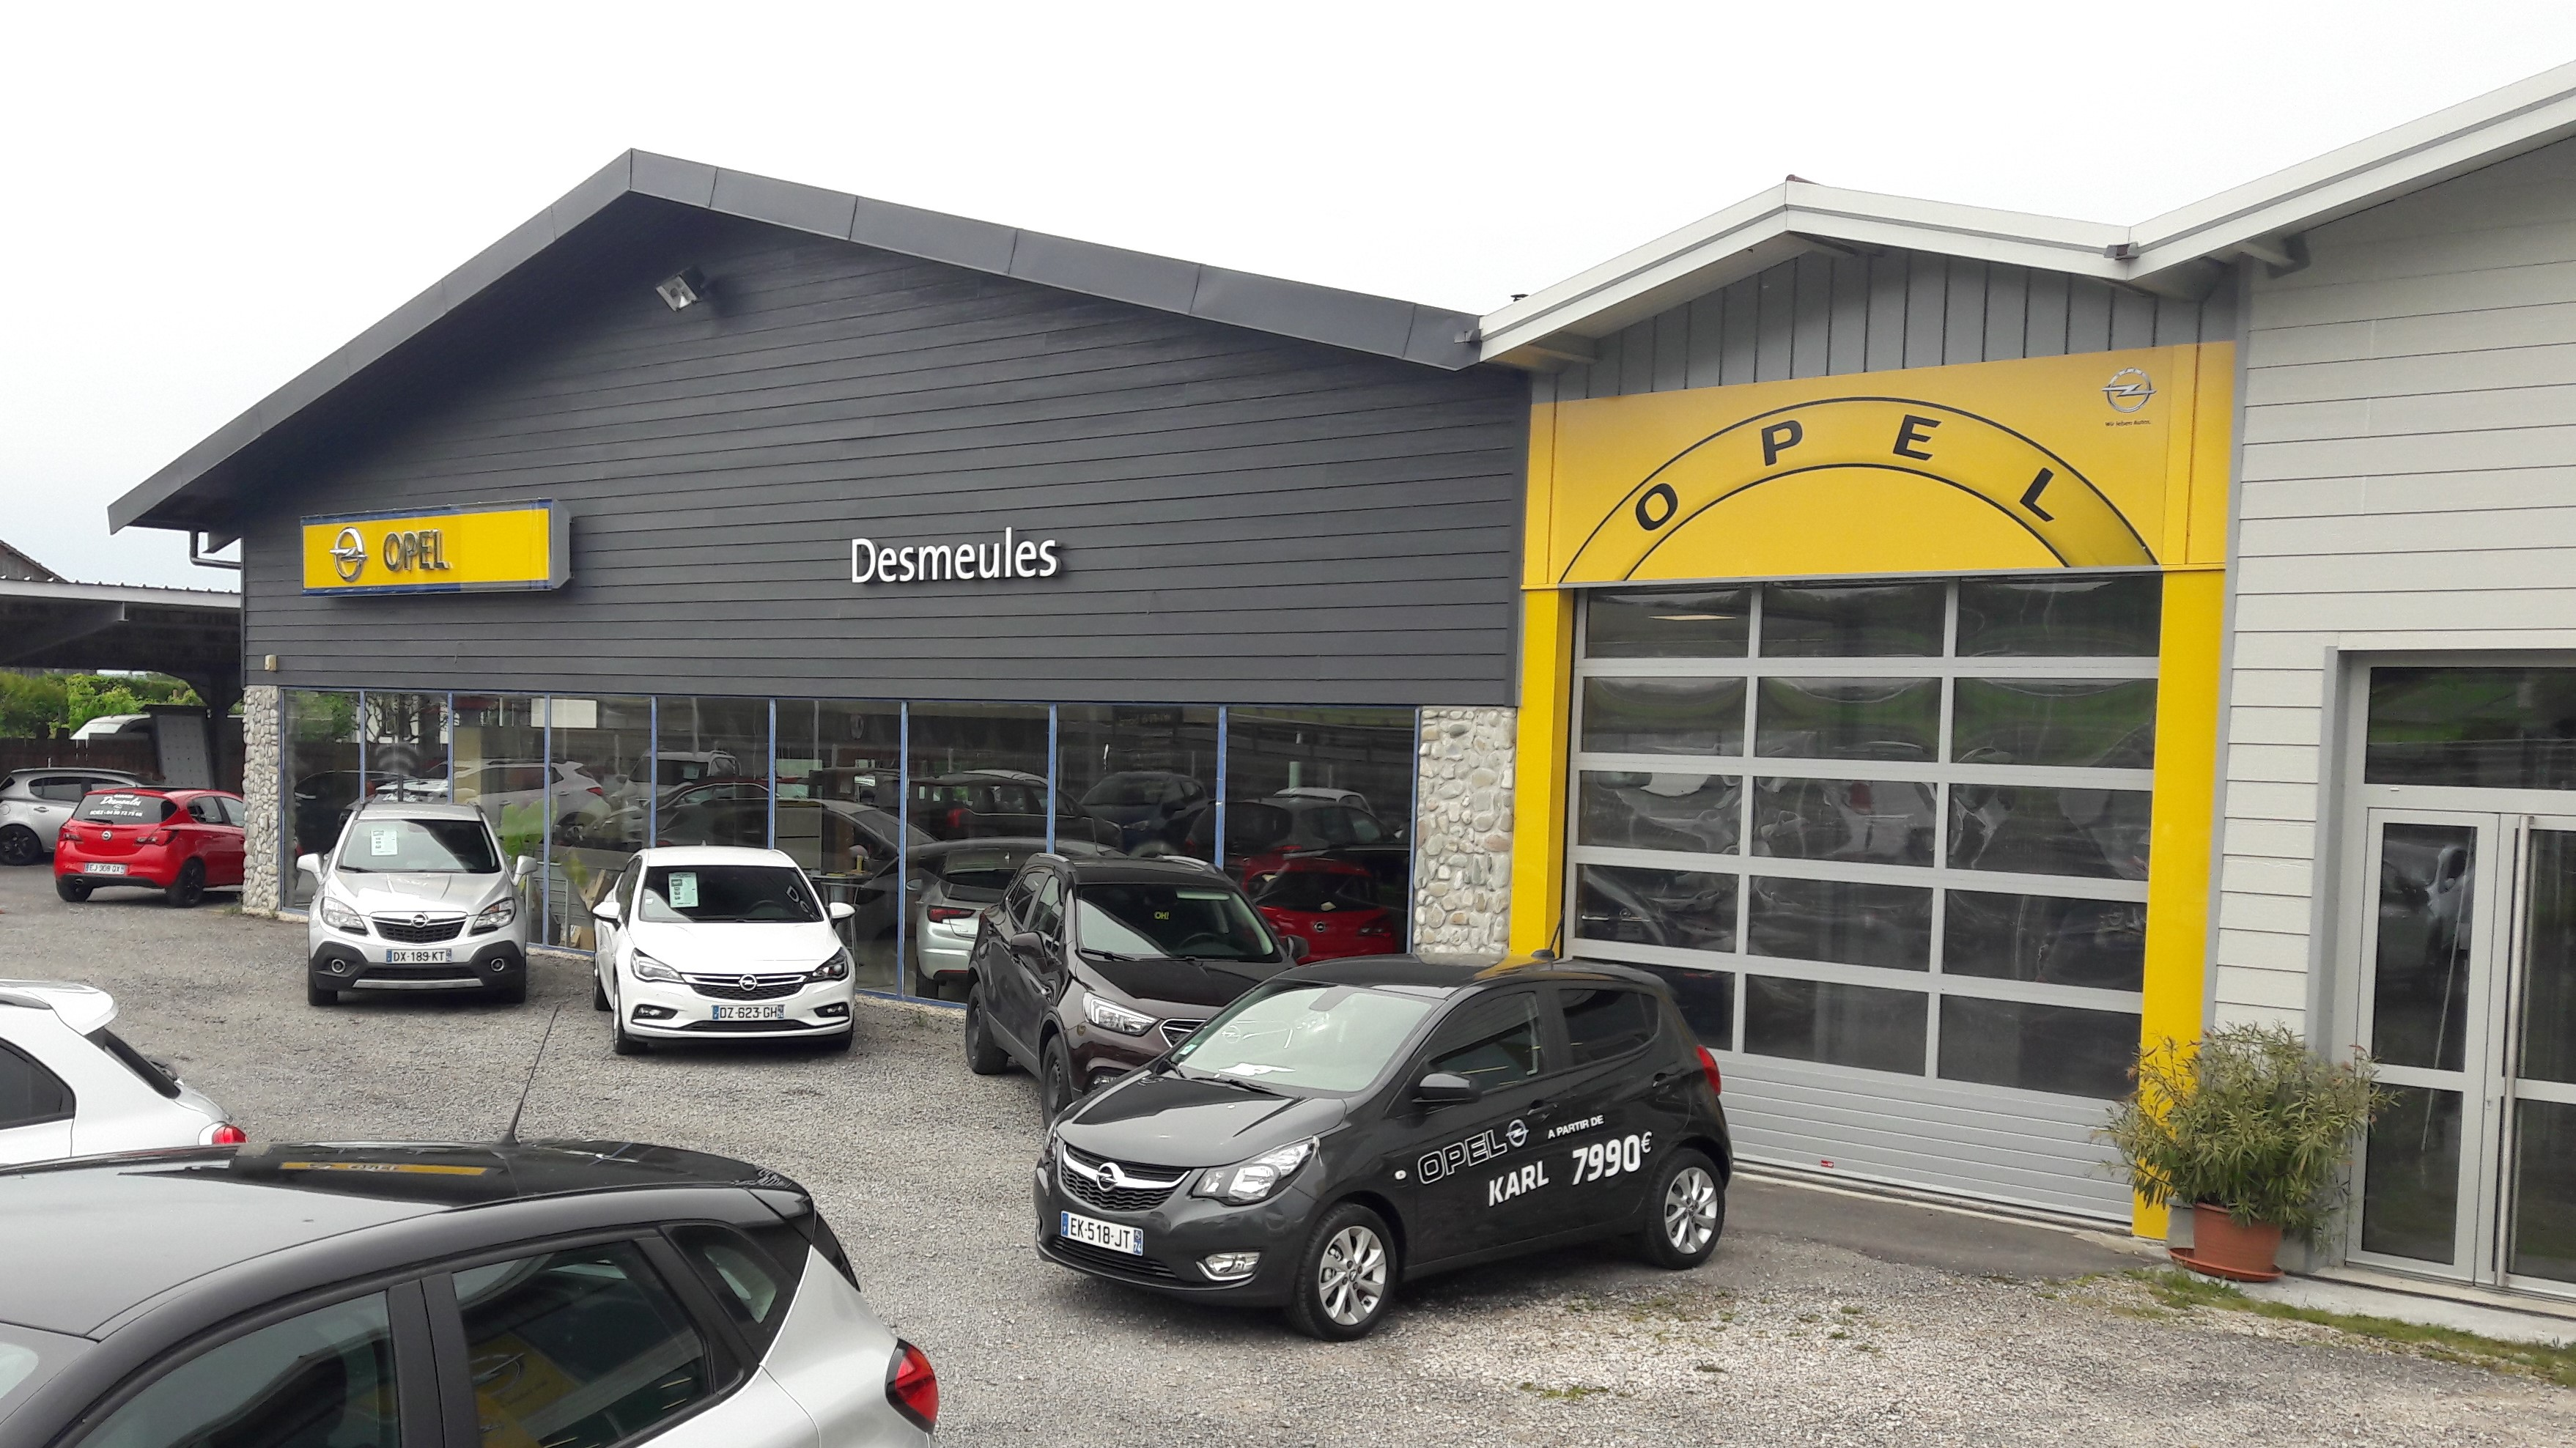 Garage desmeules voiture occasion sciez vente auto sciez for Garage vente voiture occasion dijon